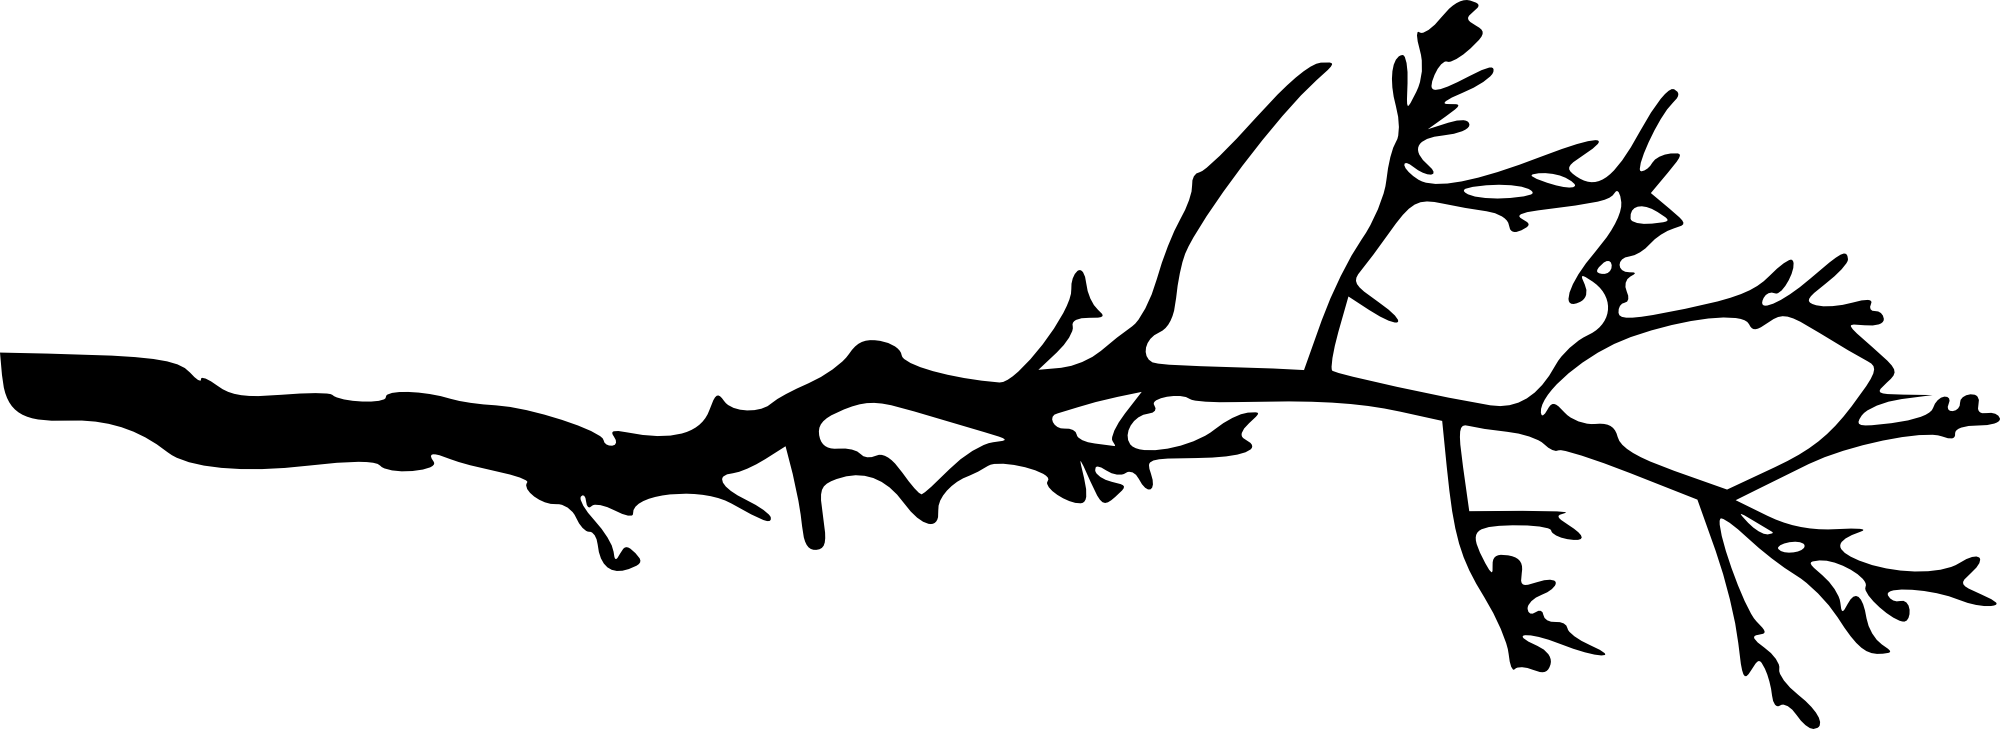 2000x729 15 Simple Tree Branch Silhouettes (Png Transparent)